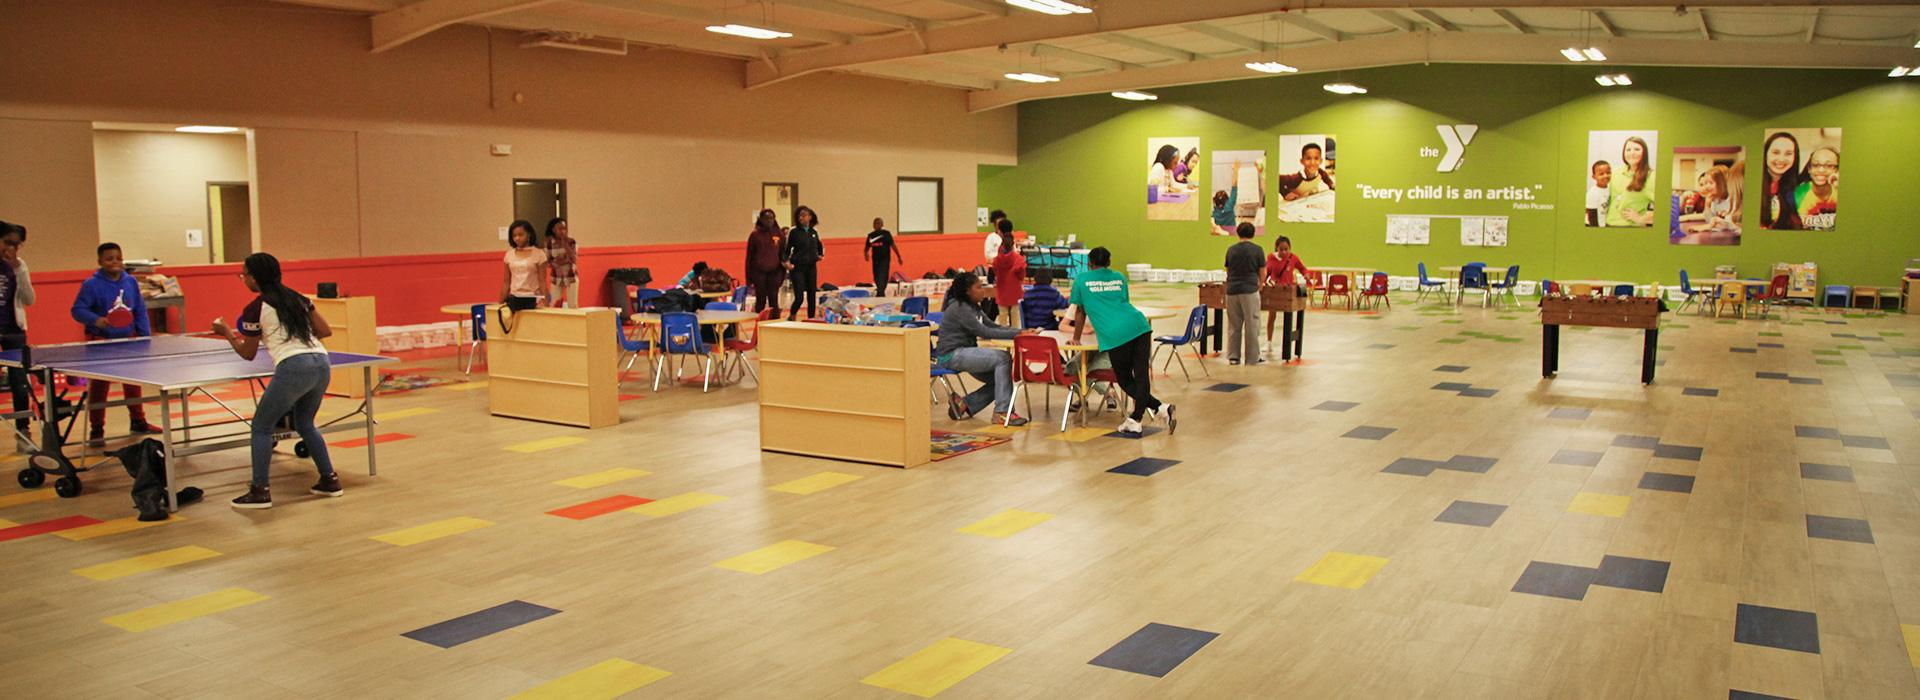 childcare room at Suffolk Family YMCA